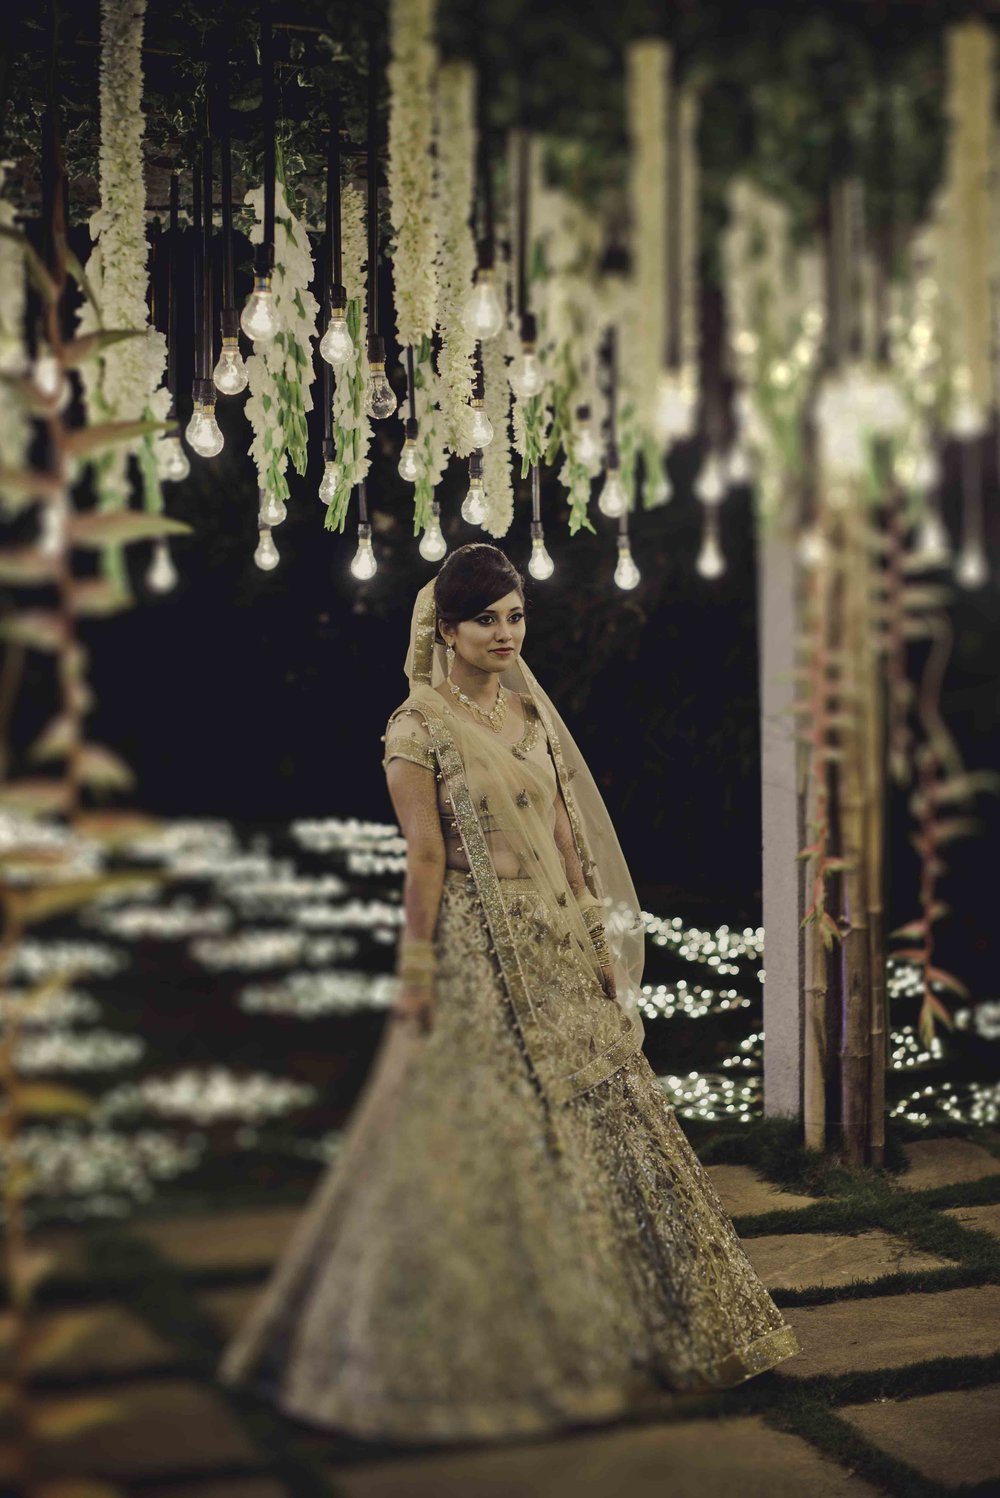 Edited with 10-Wedding Vintage-Clean